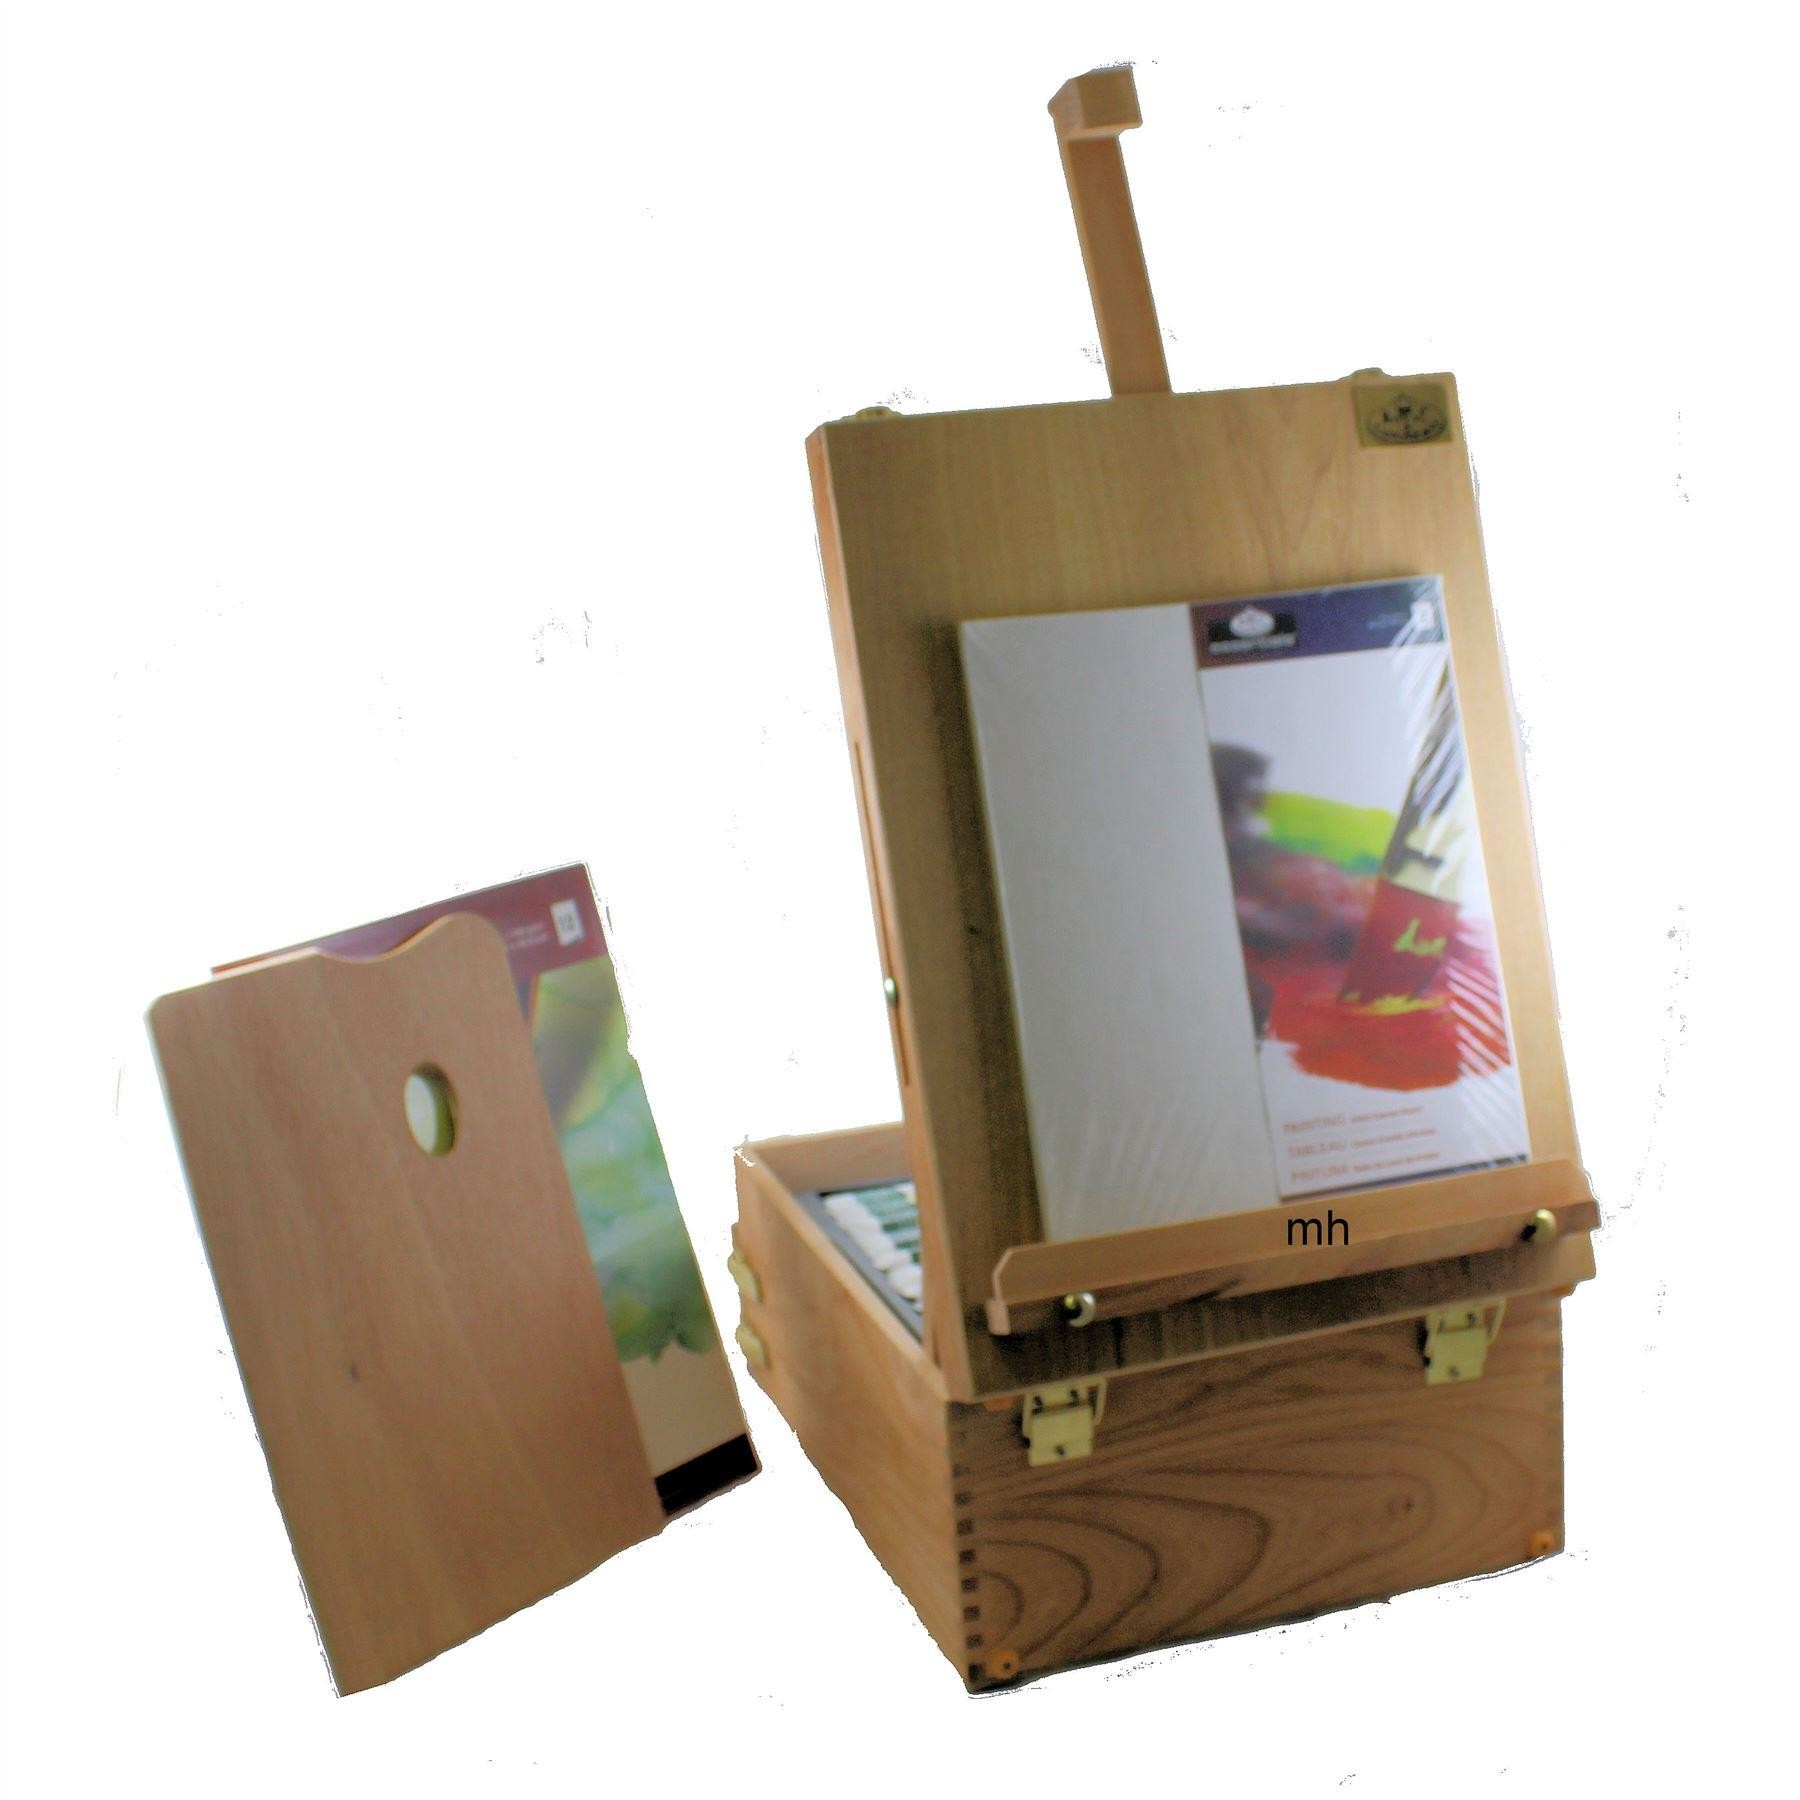 df4db4e579f4c Royal & Langnickel Artists Mixed Media Wooden Easel Set - 104 Pieces,  REA6000